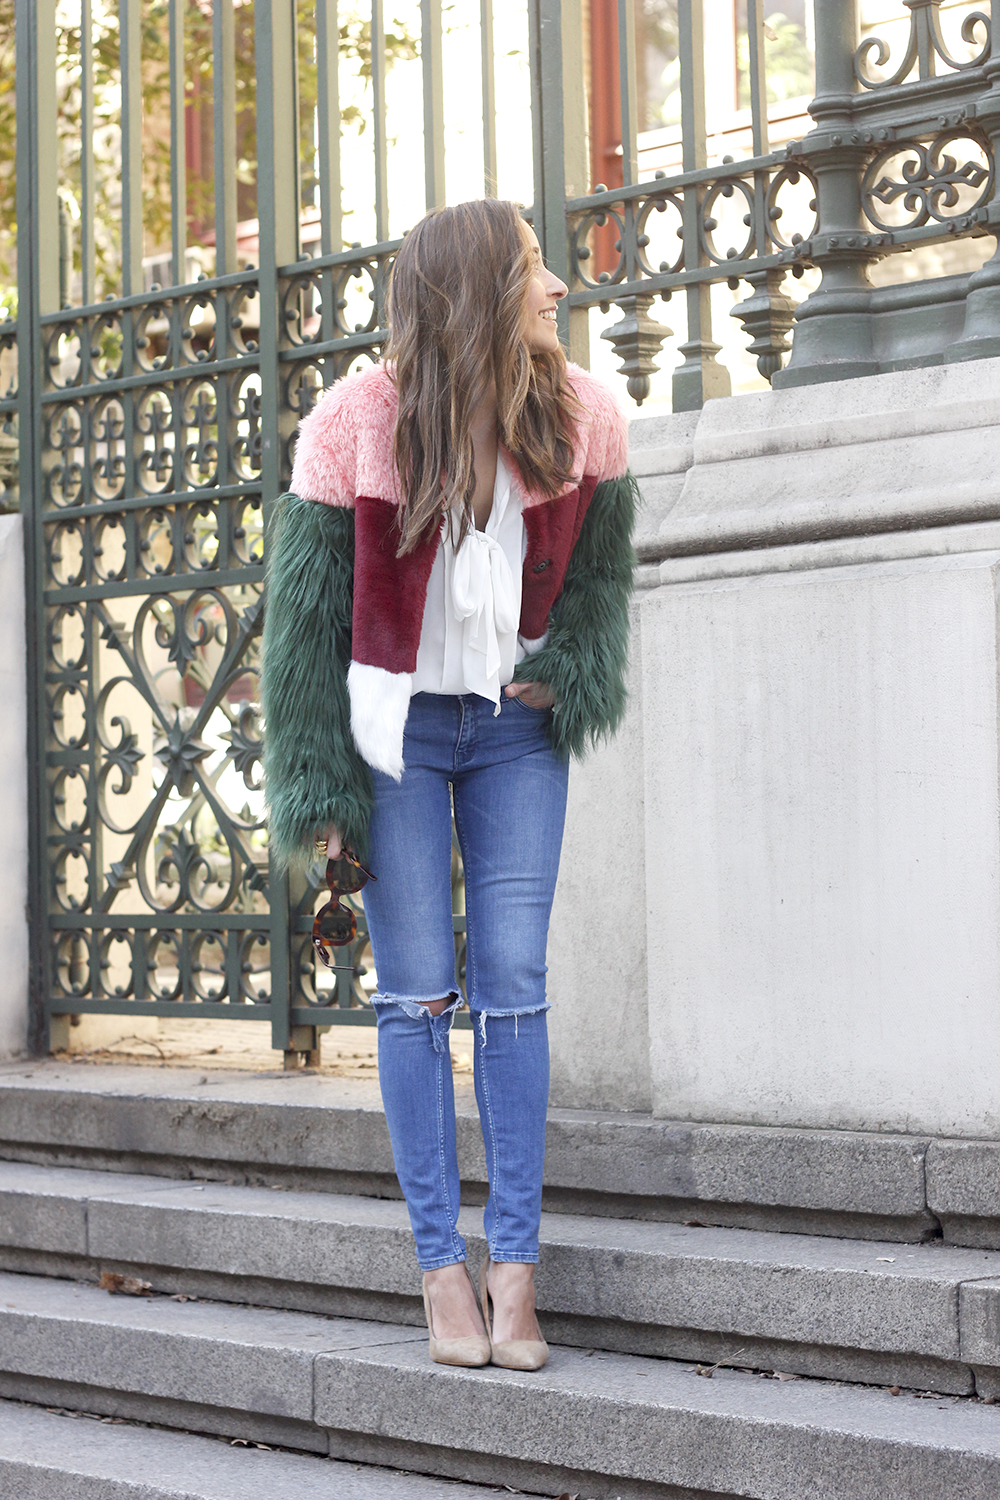 Faur fux coat white shirt ripped jeans heels street style fashion outfit access03